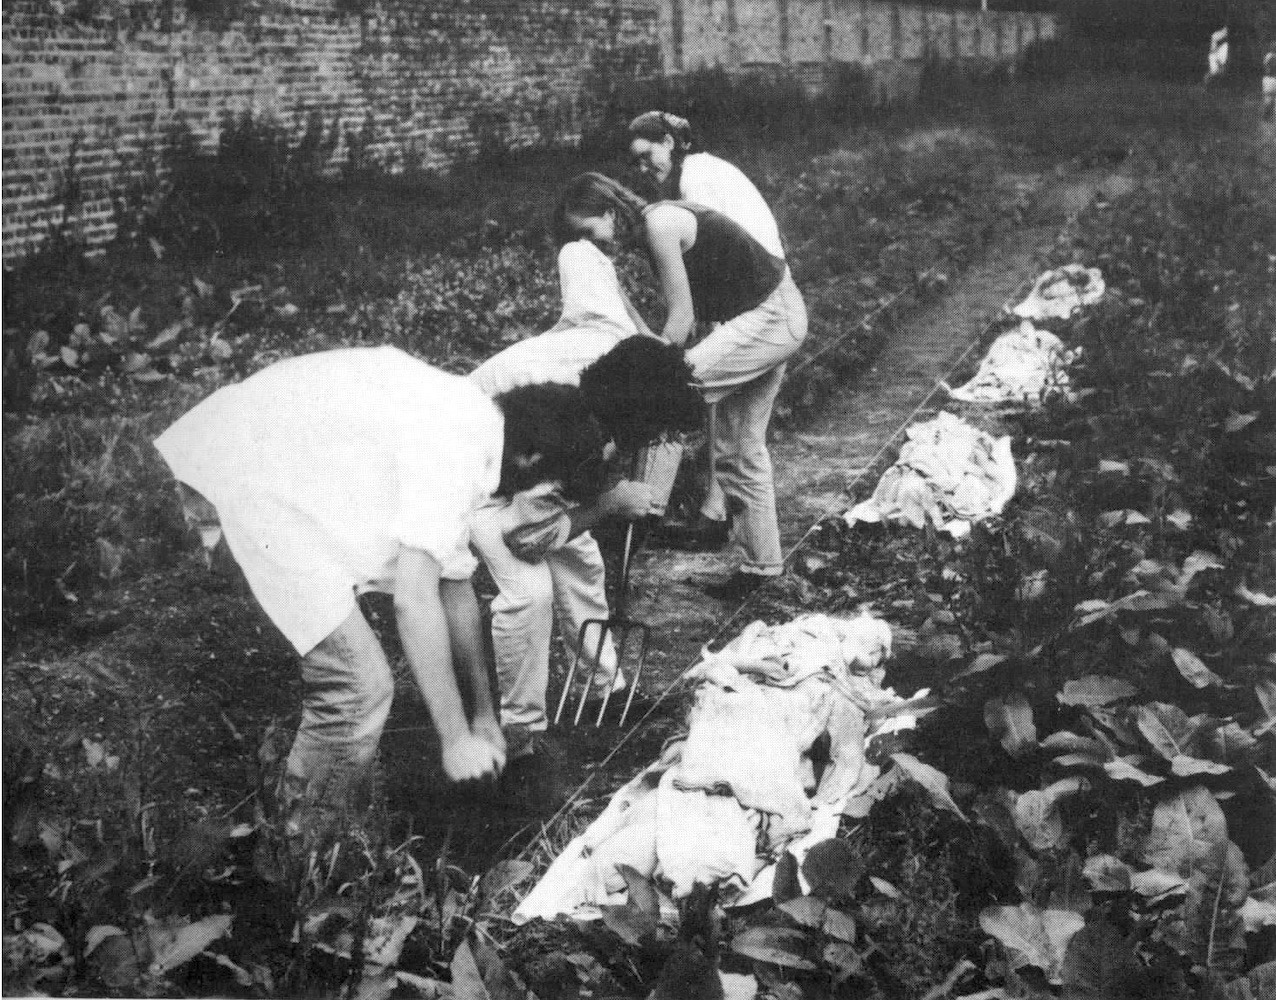 Human Remains: Burial and Preservation was a temporary work for a group sculpture exhibition in Gunnersbury Park, London. Members of the public and students from the BA Hons Fine Art Degree at Birmingham Institute of Art and Design helped to dig a ditch 140 ft long. 1990